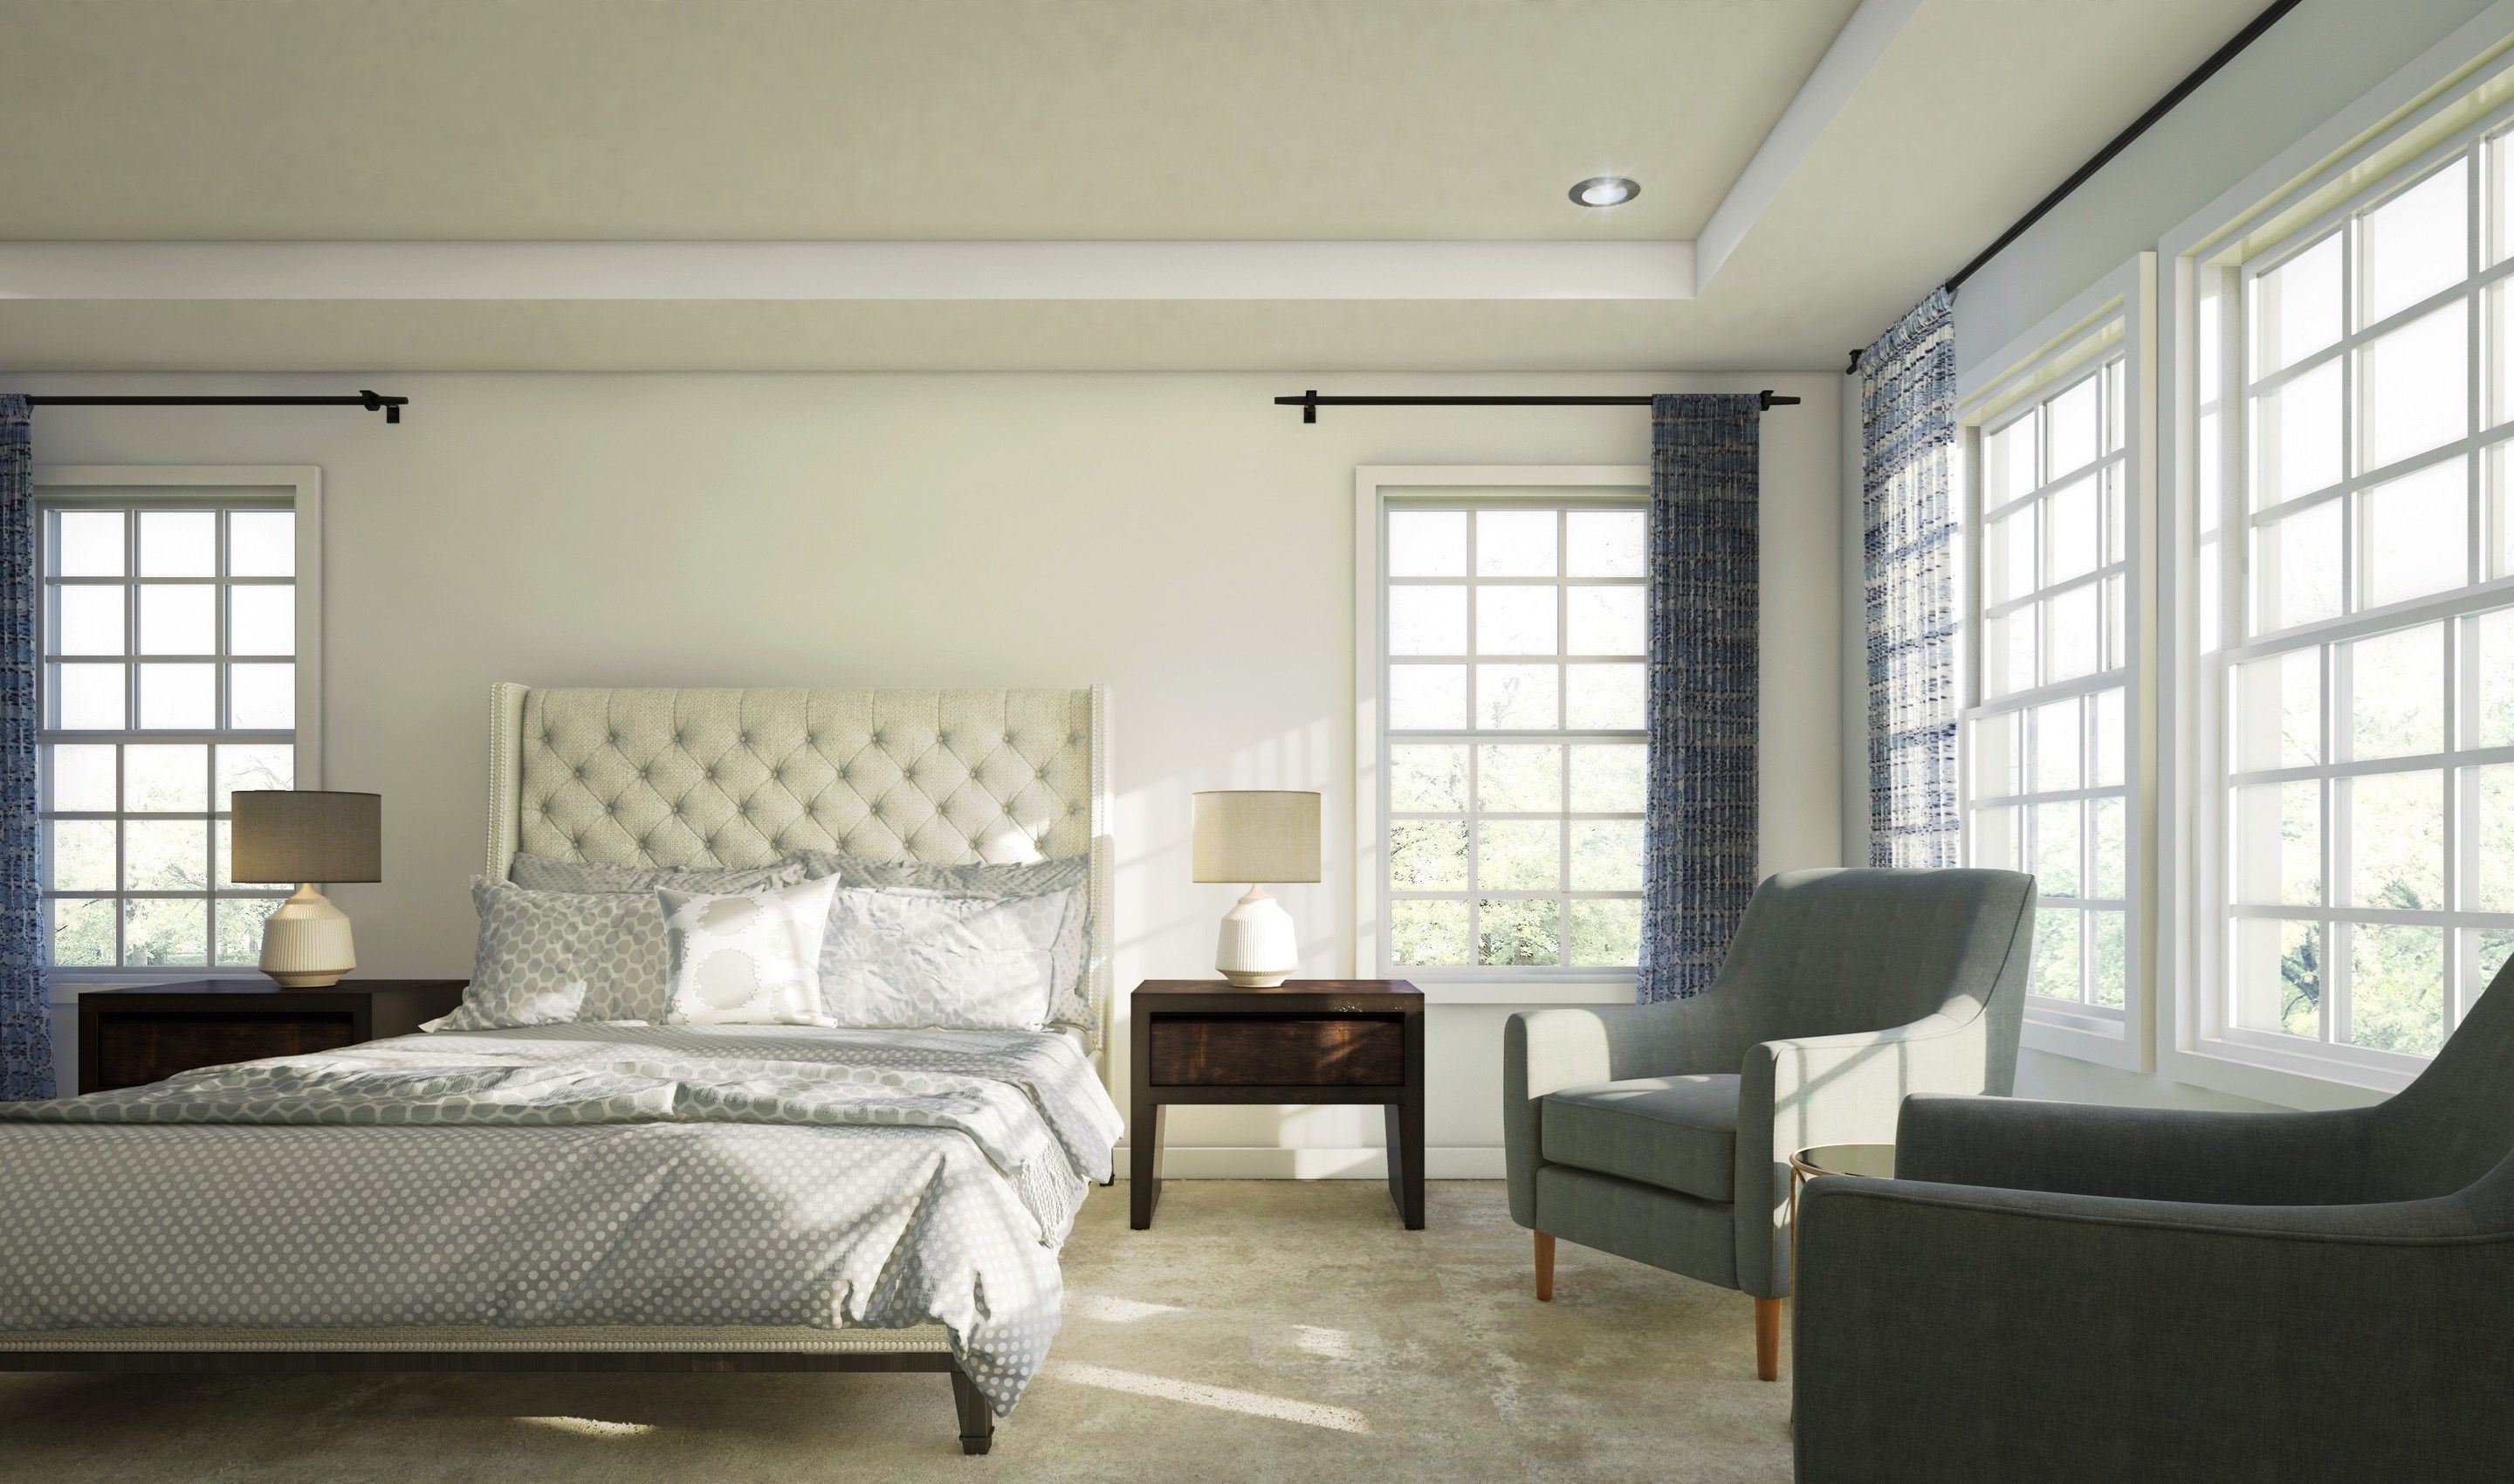 Bedroom featured in the Claremont II By K. Hovnanian® Homes in Middlesex County, NJ